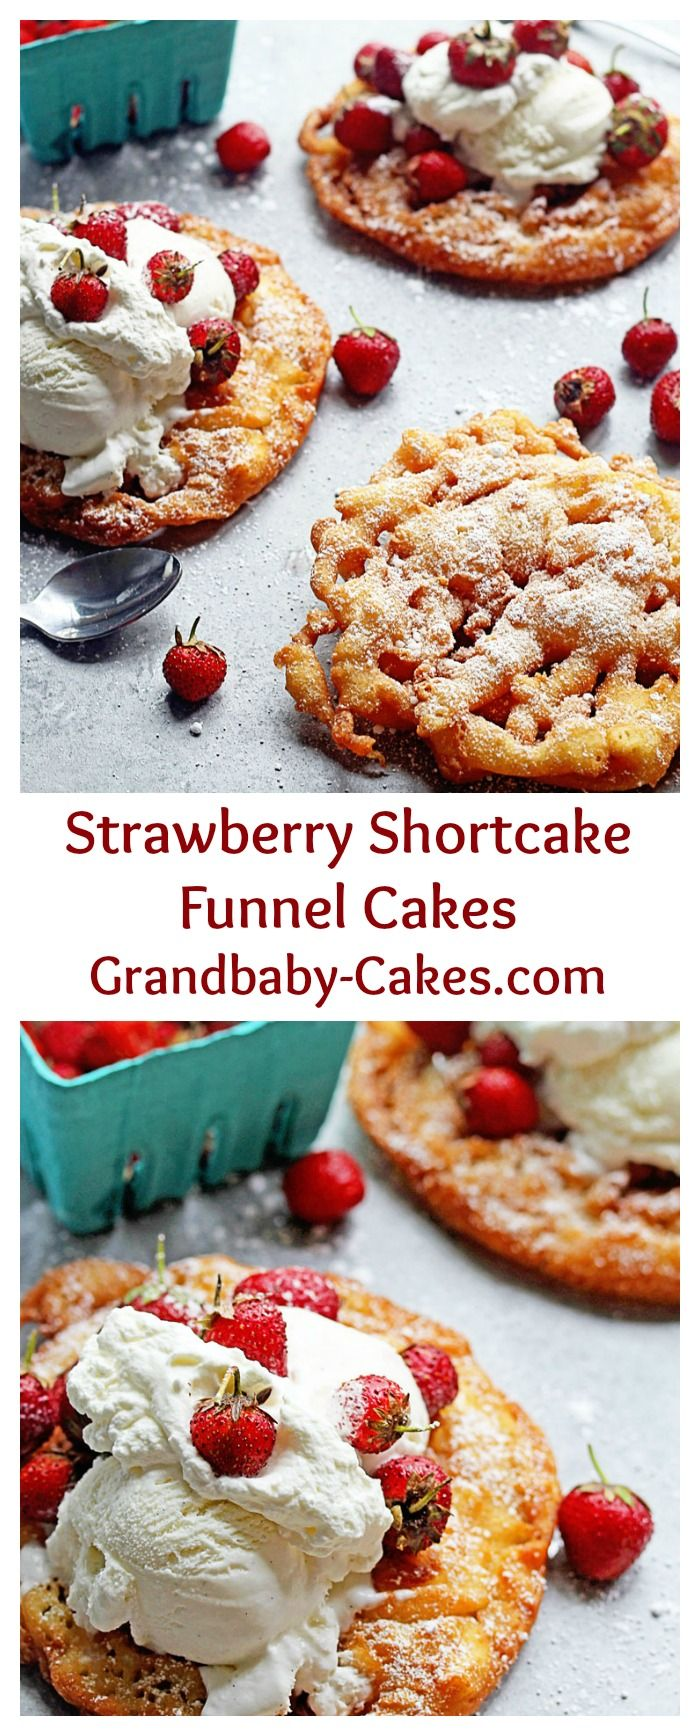 Strawberry Shortcake Funnel Cakes | Grandbaby-Cakes.com